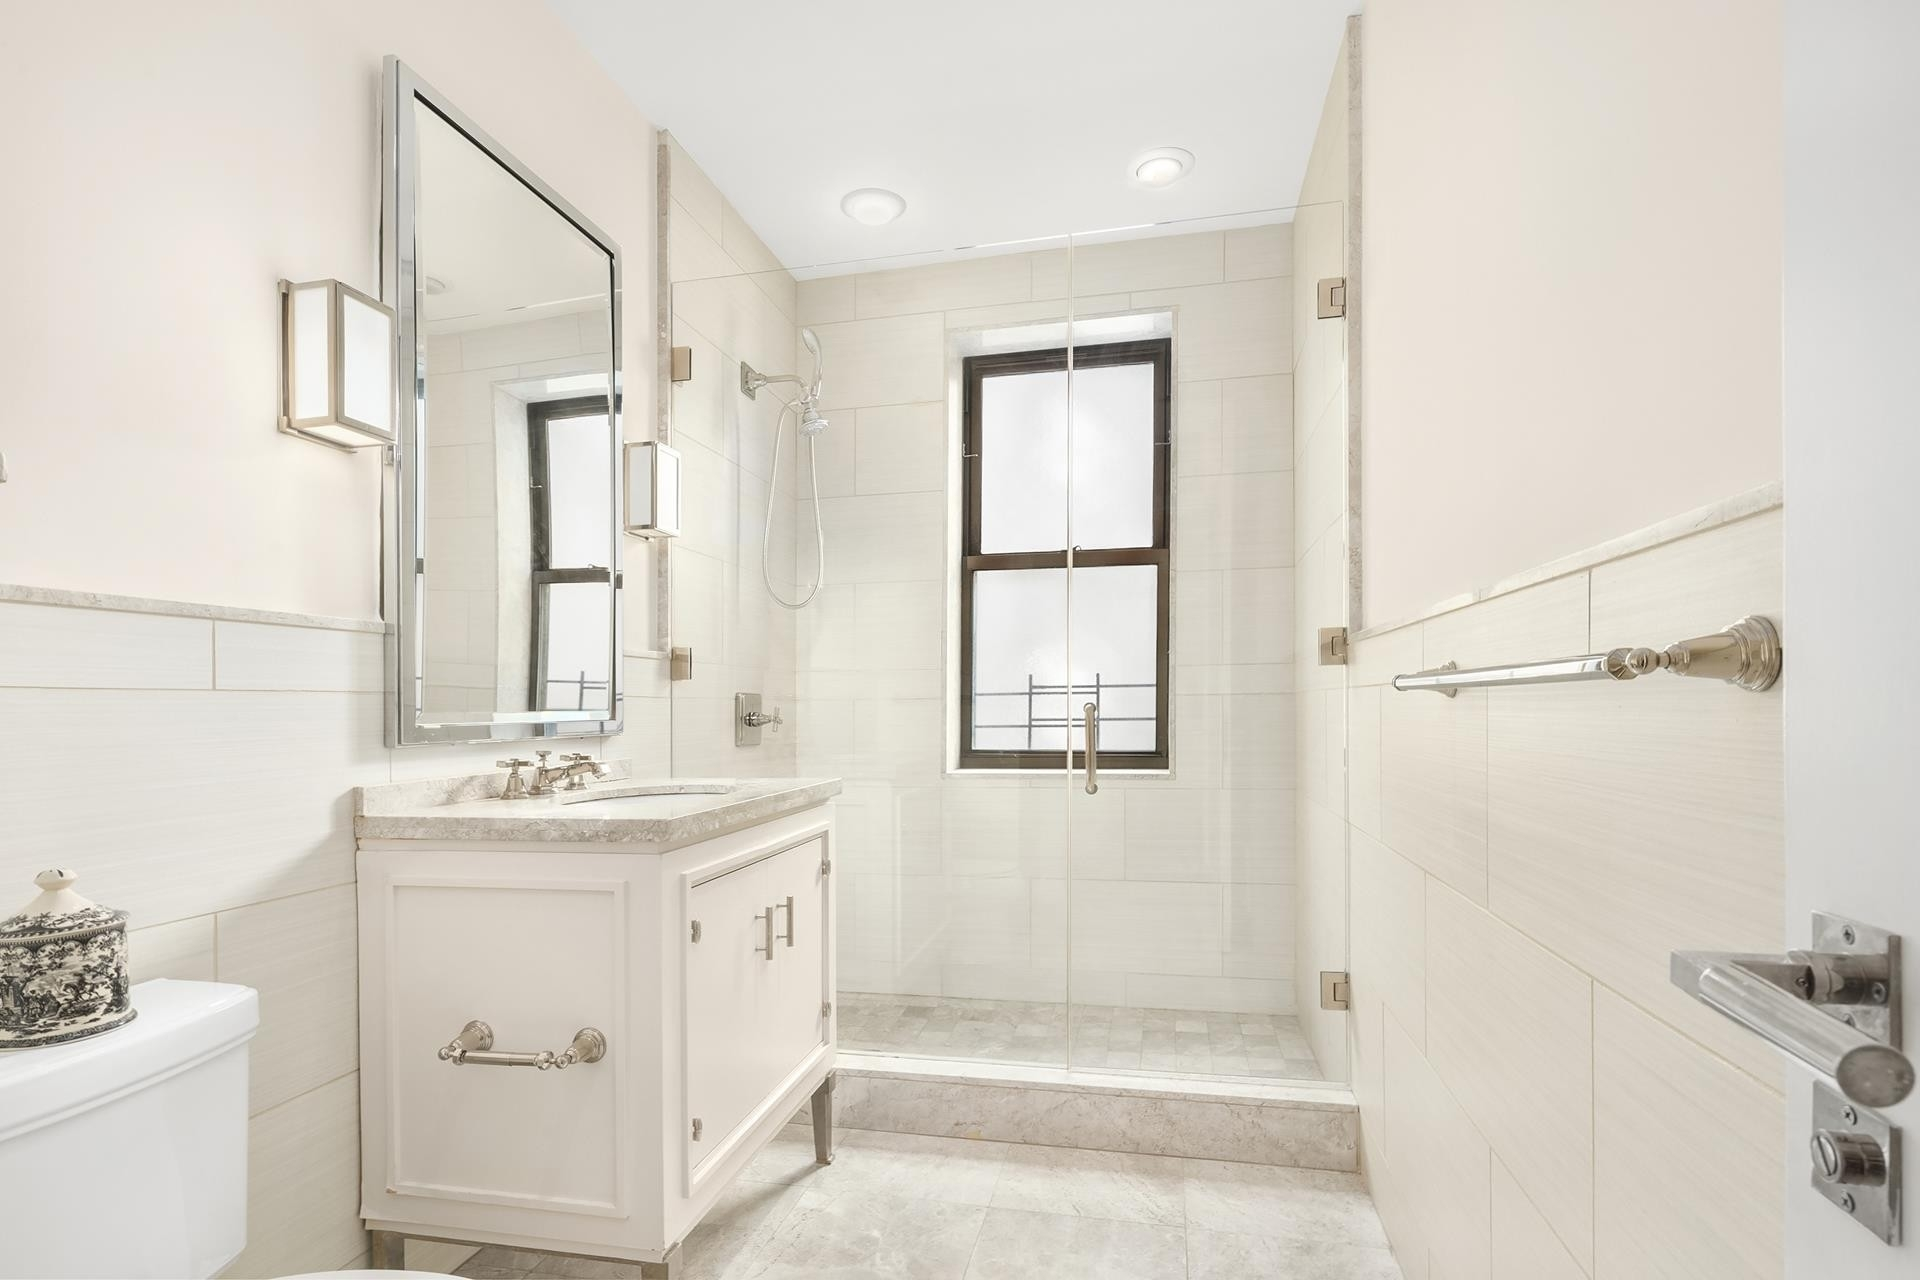 8. Condominiums for Sale at The Parkwood, 31 E 28TH ST , 9E NoMad, New York, NY 10016